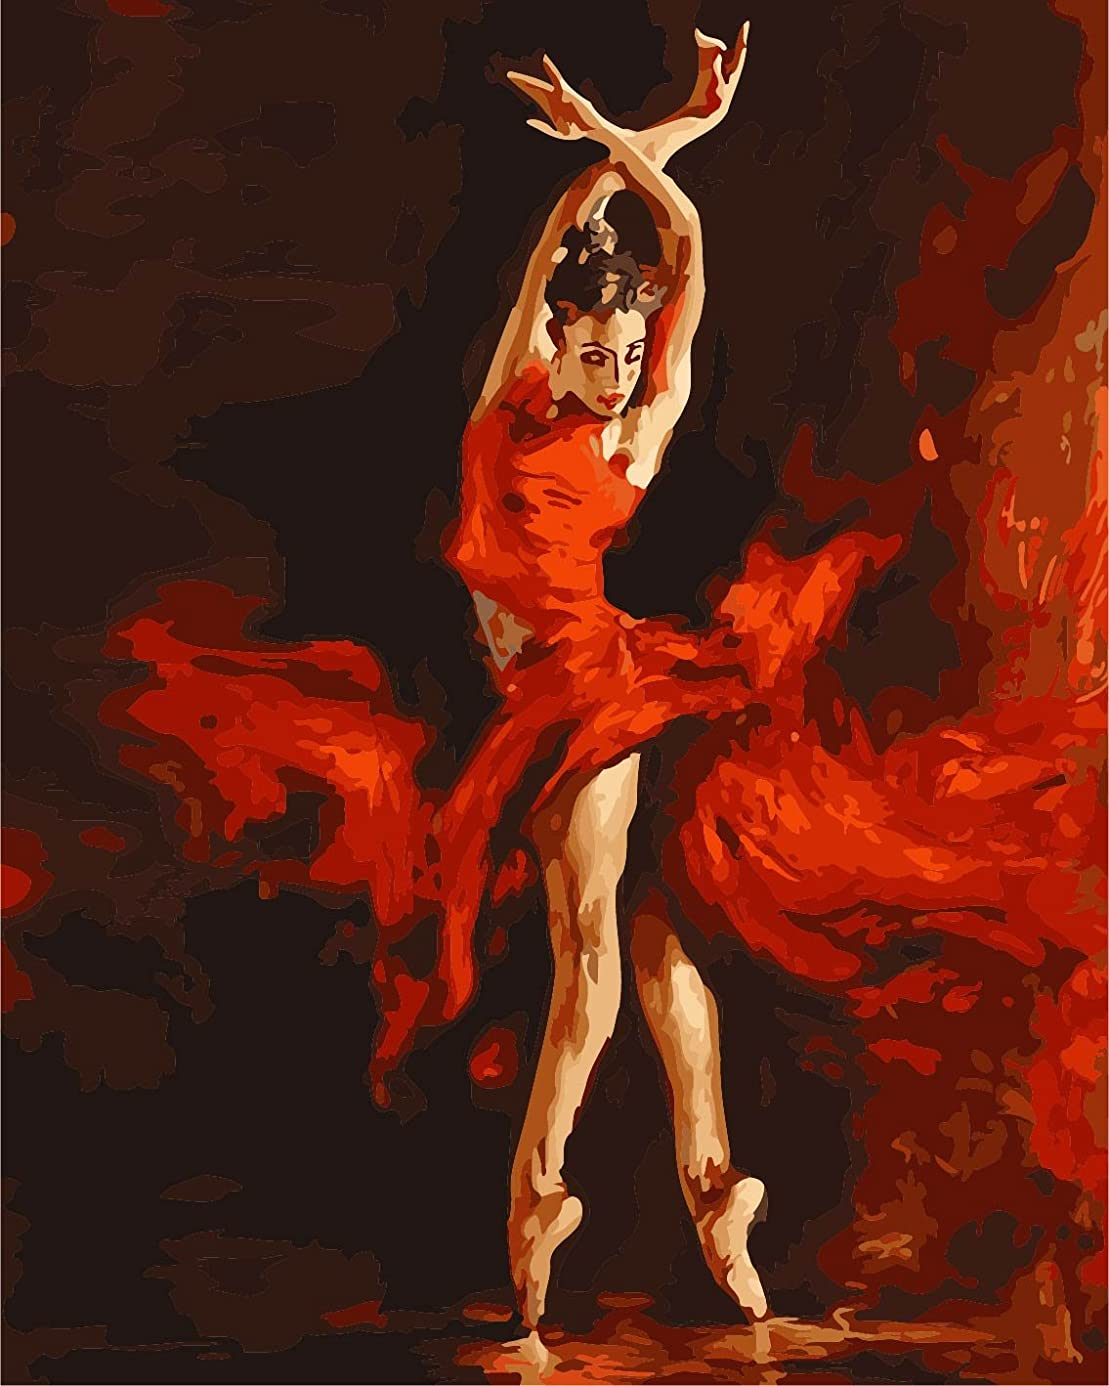 CaptainCrafts New Paint by Number Kits - Dancer Ballet Ballerina Red Fire Girl 16x20 inch - Diy Painting by Numbers for Adults Beginner Kids (With Frame) tqd0980134